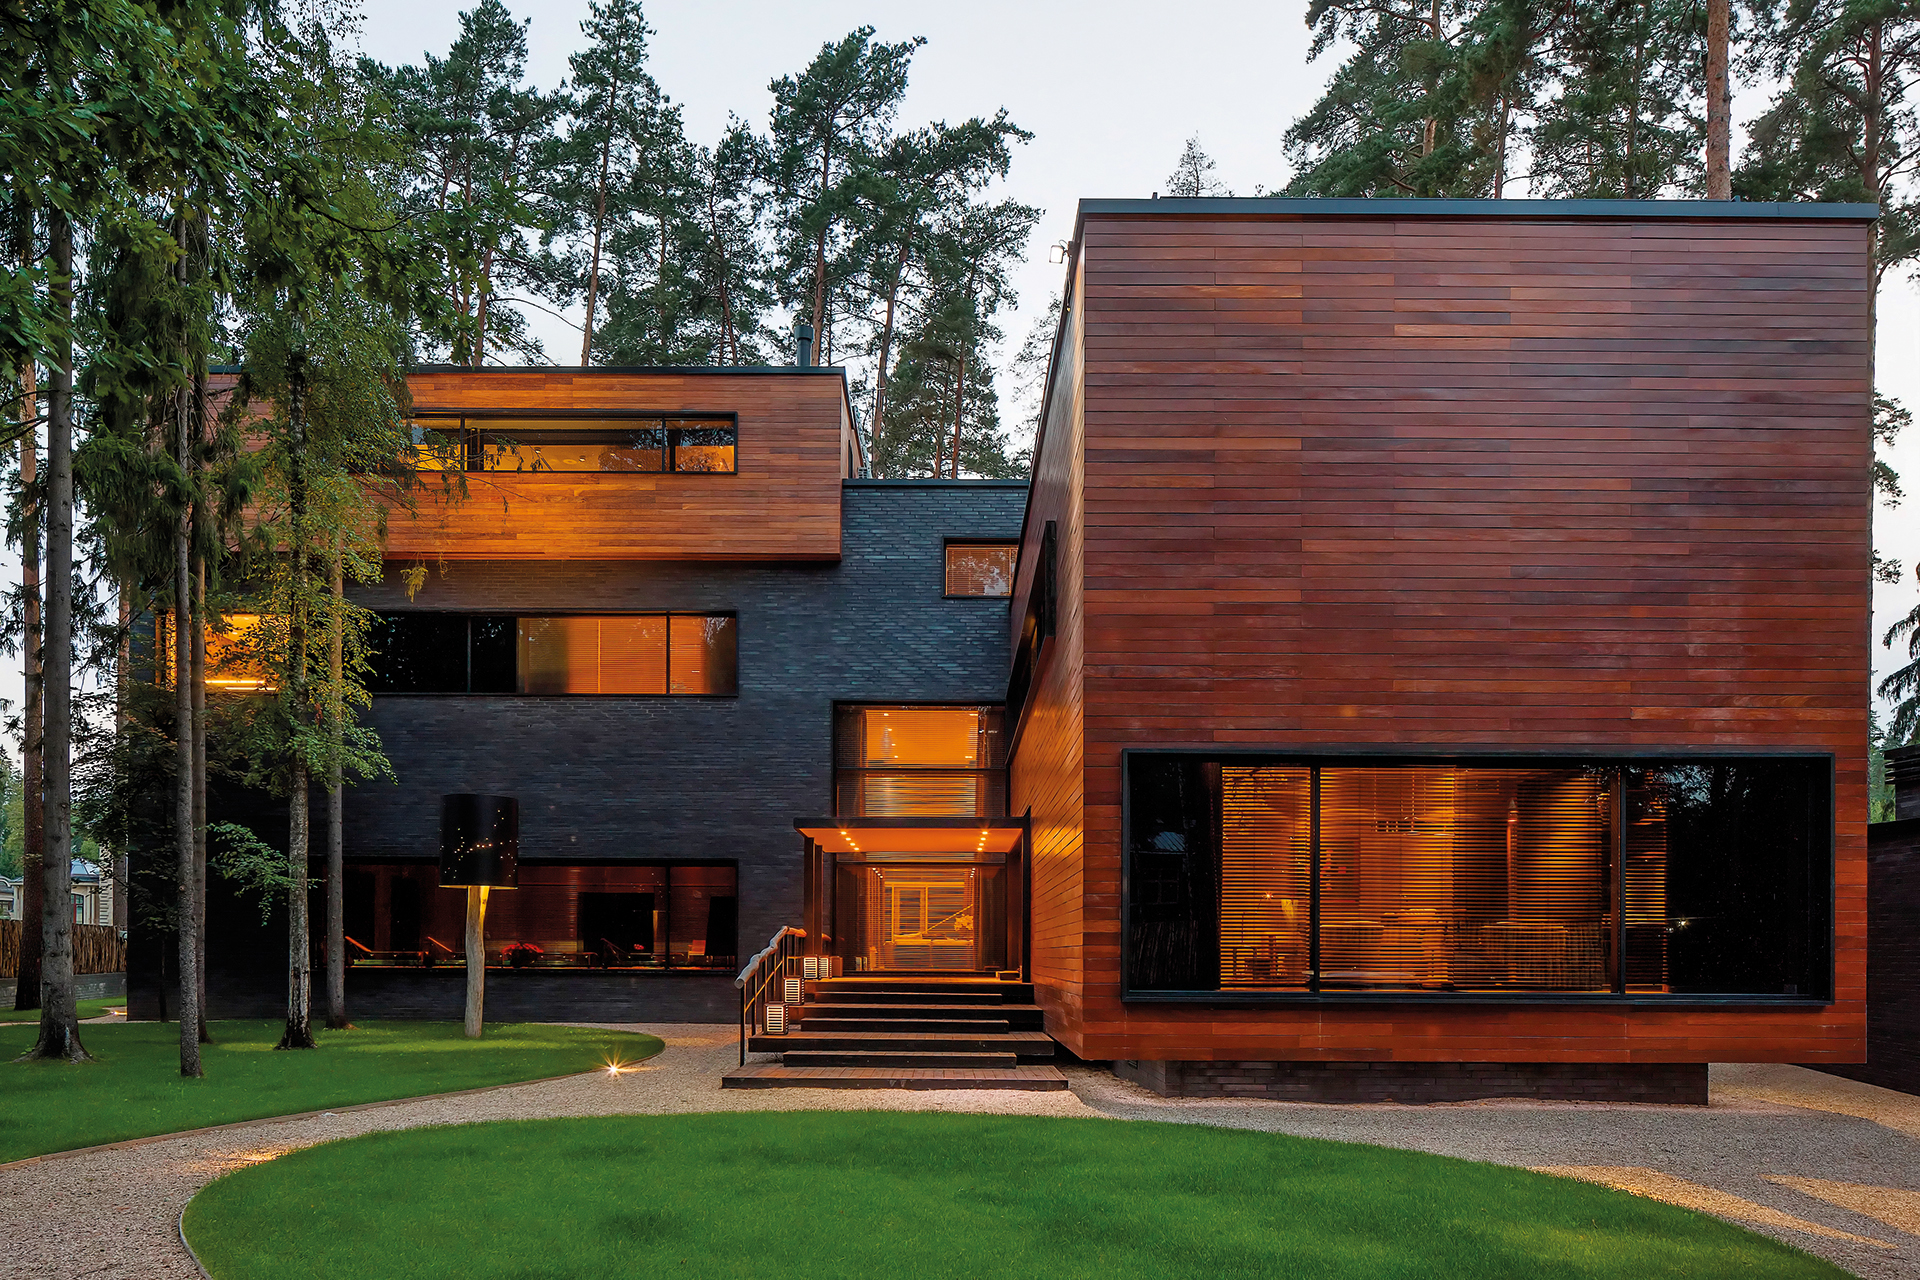 Exterior grounds of the shukovka house cuboid in appearance with wood and blackstone finish